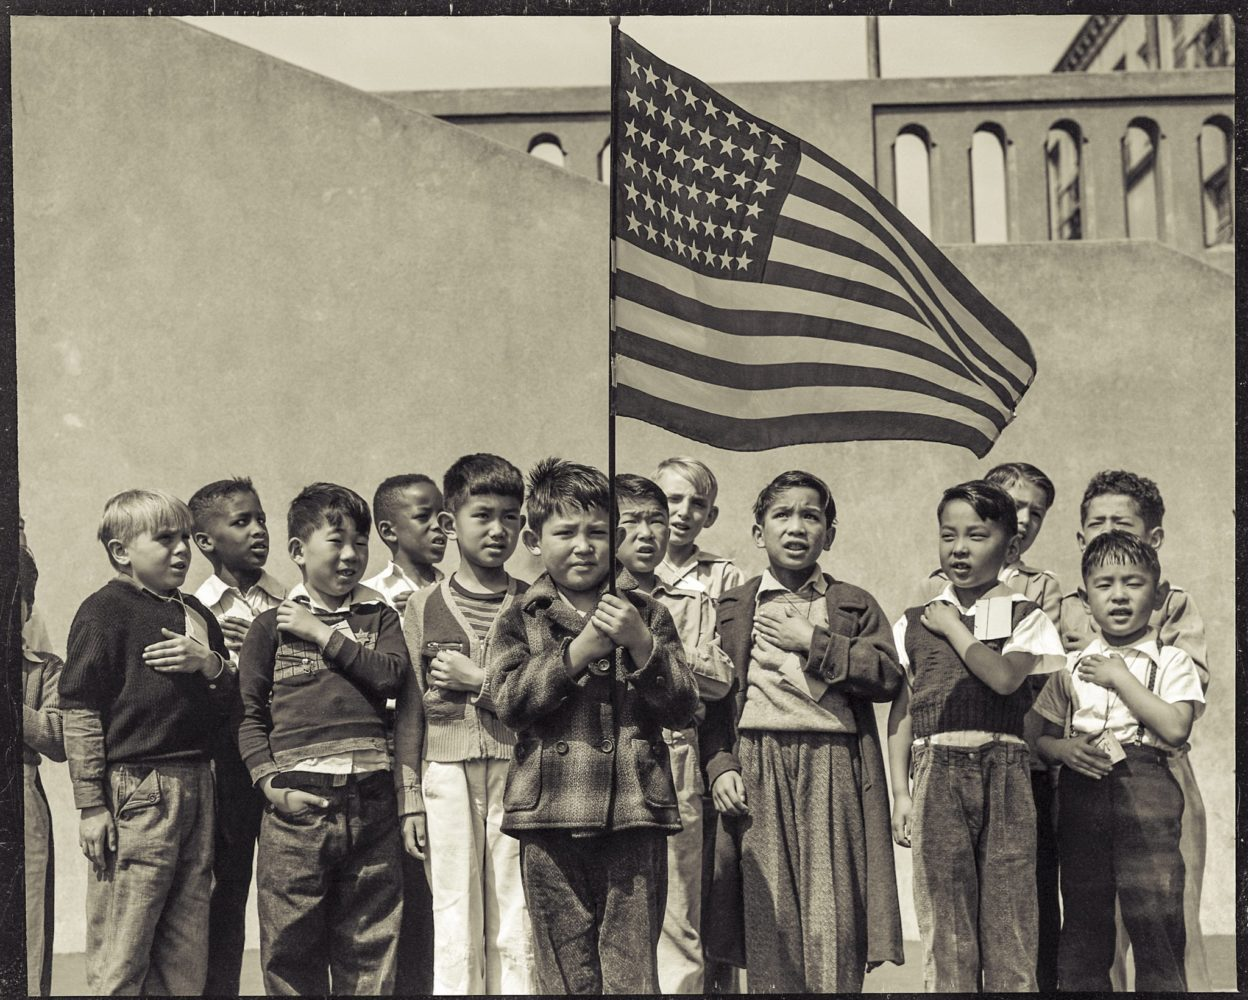 """Flag of allegiance pledge at Raphael Weill Public School, Geary and Buchanan Streets, Children in families of Japanese ancestry were evacuated with their parents and will be housed for the duration in War Relocation Authority centers where facilities will be provided for them to continue their education."""" Dorothea Lange, 1942, San Francisco, California"""